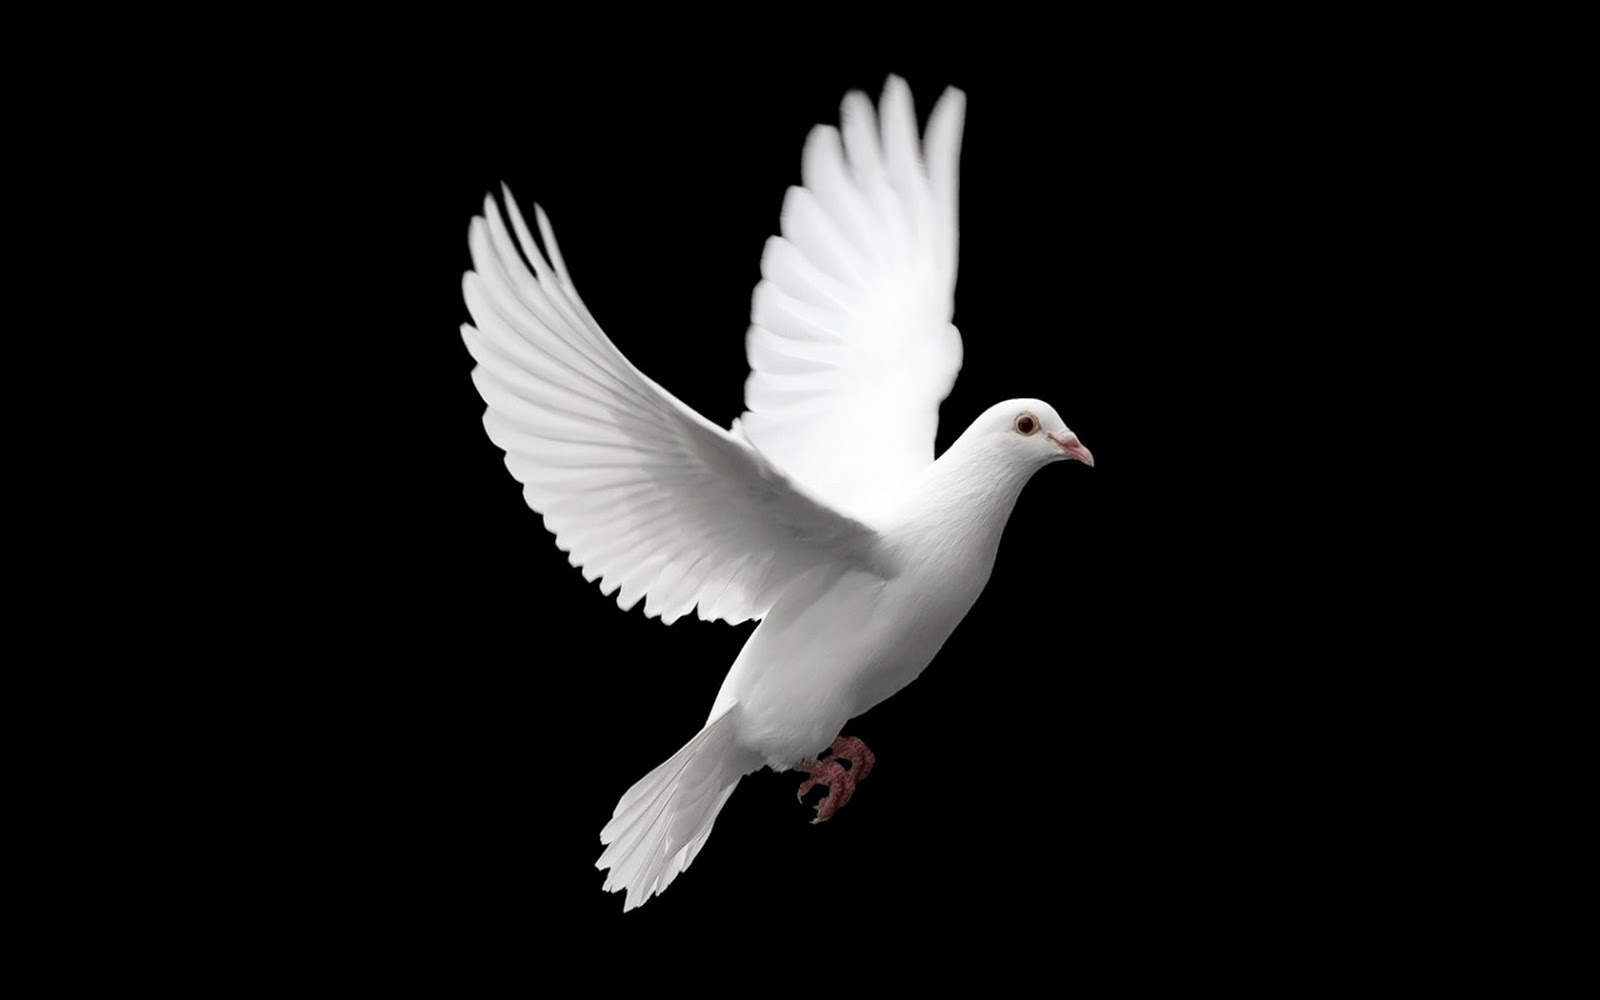 Peace Hd Wallpapers Free Download Dove Wallpapers Hd Beautiful Wallpapers Collection 2018